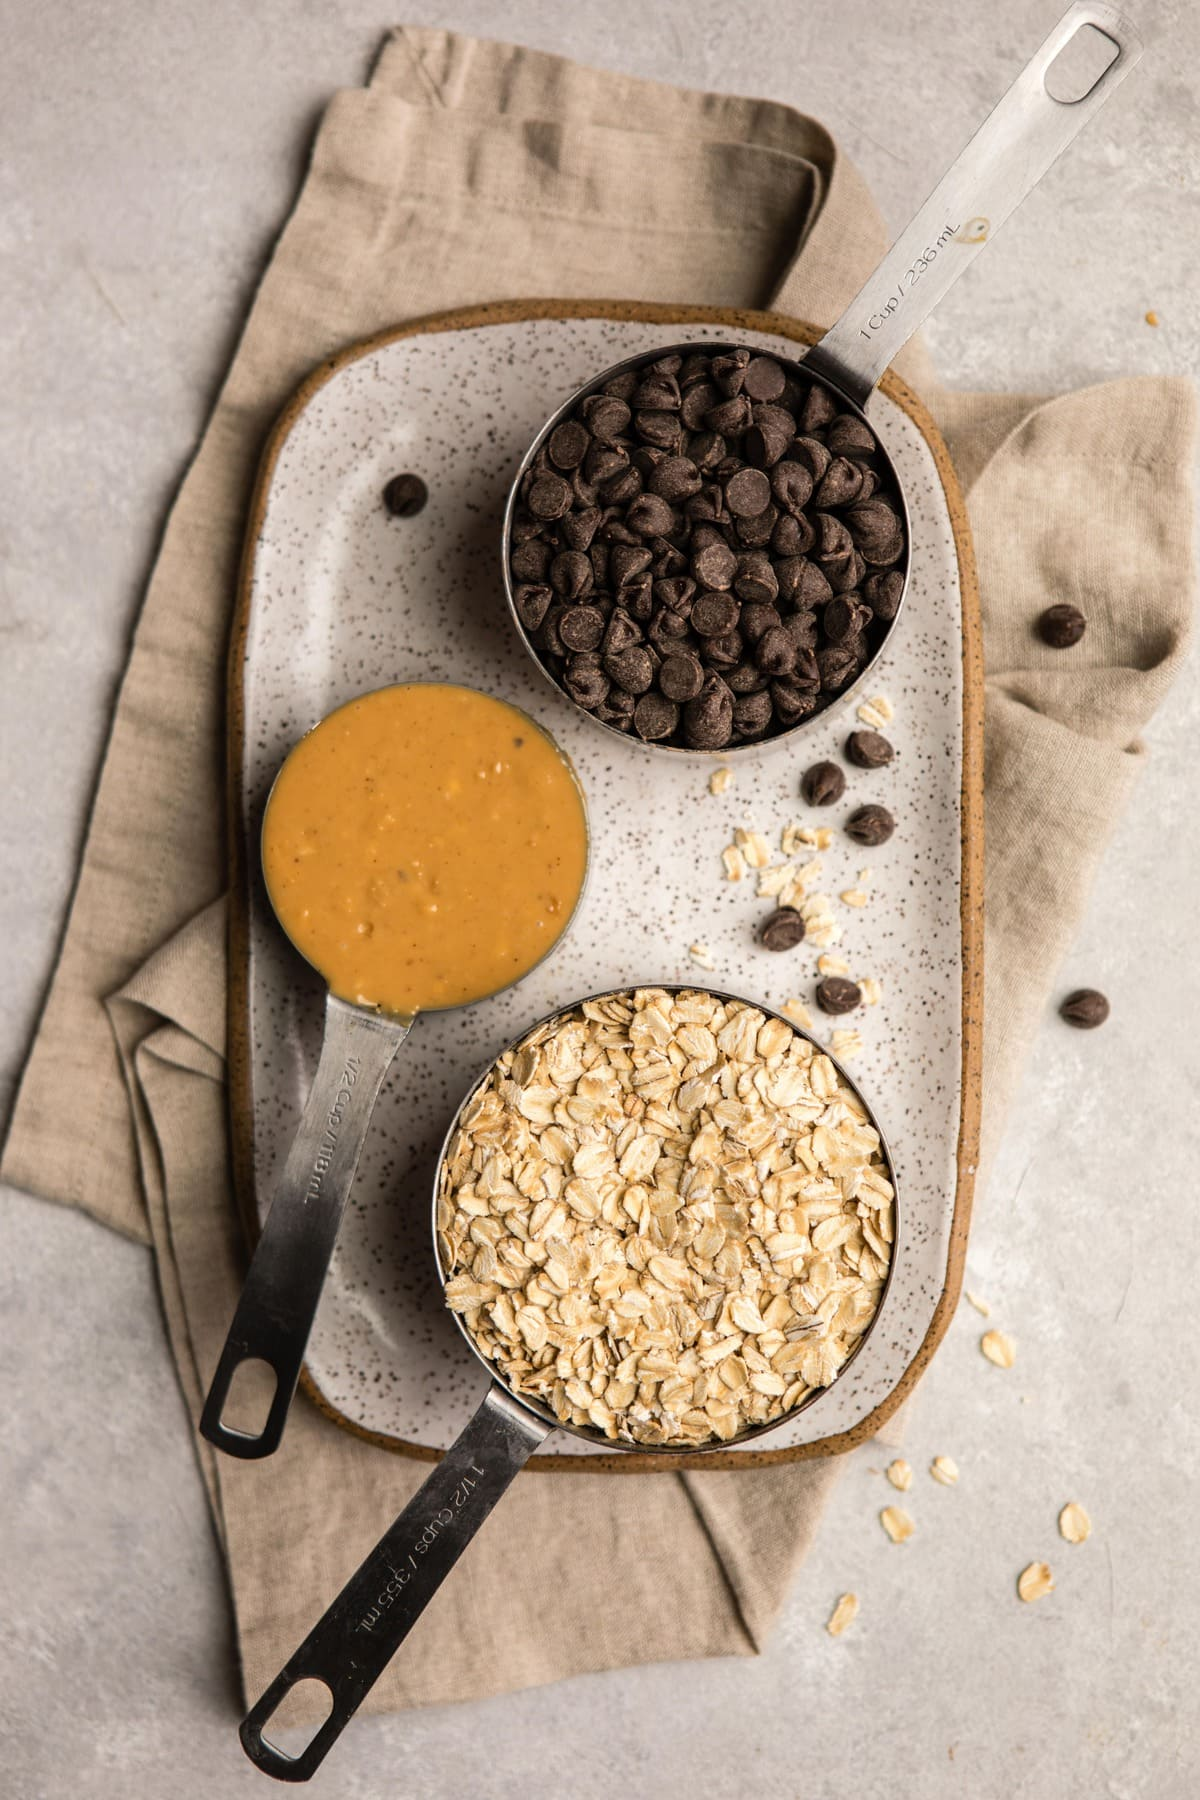 ingredients for no-bake peanut butter cookies on white speckled serving platter